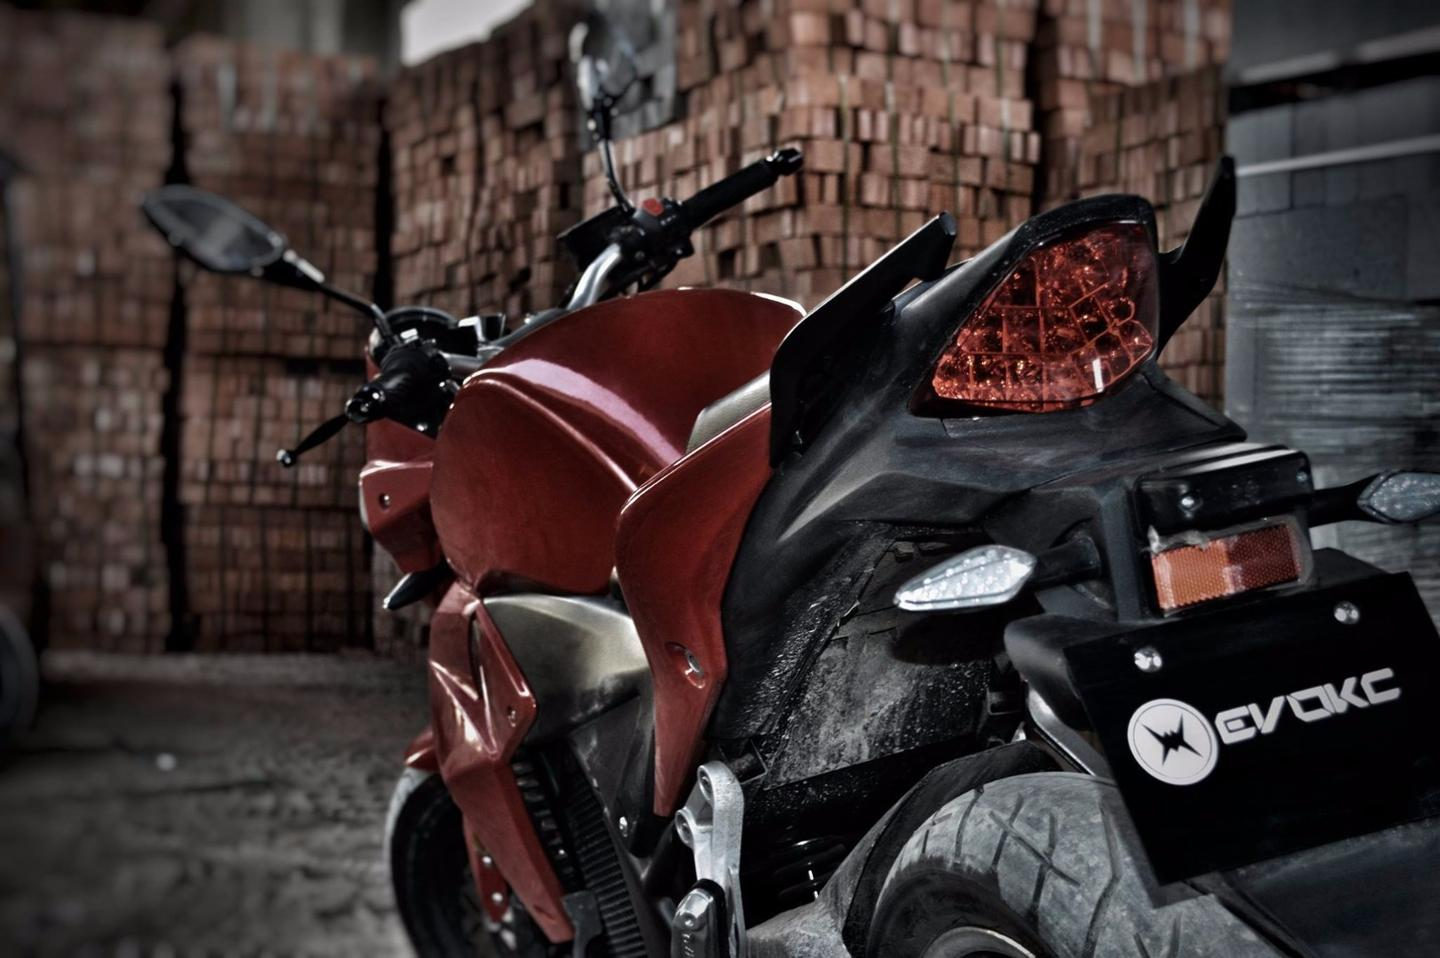 The Urban S is currently the only Evoke motorcycle on offer